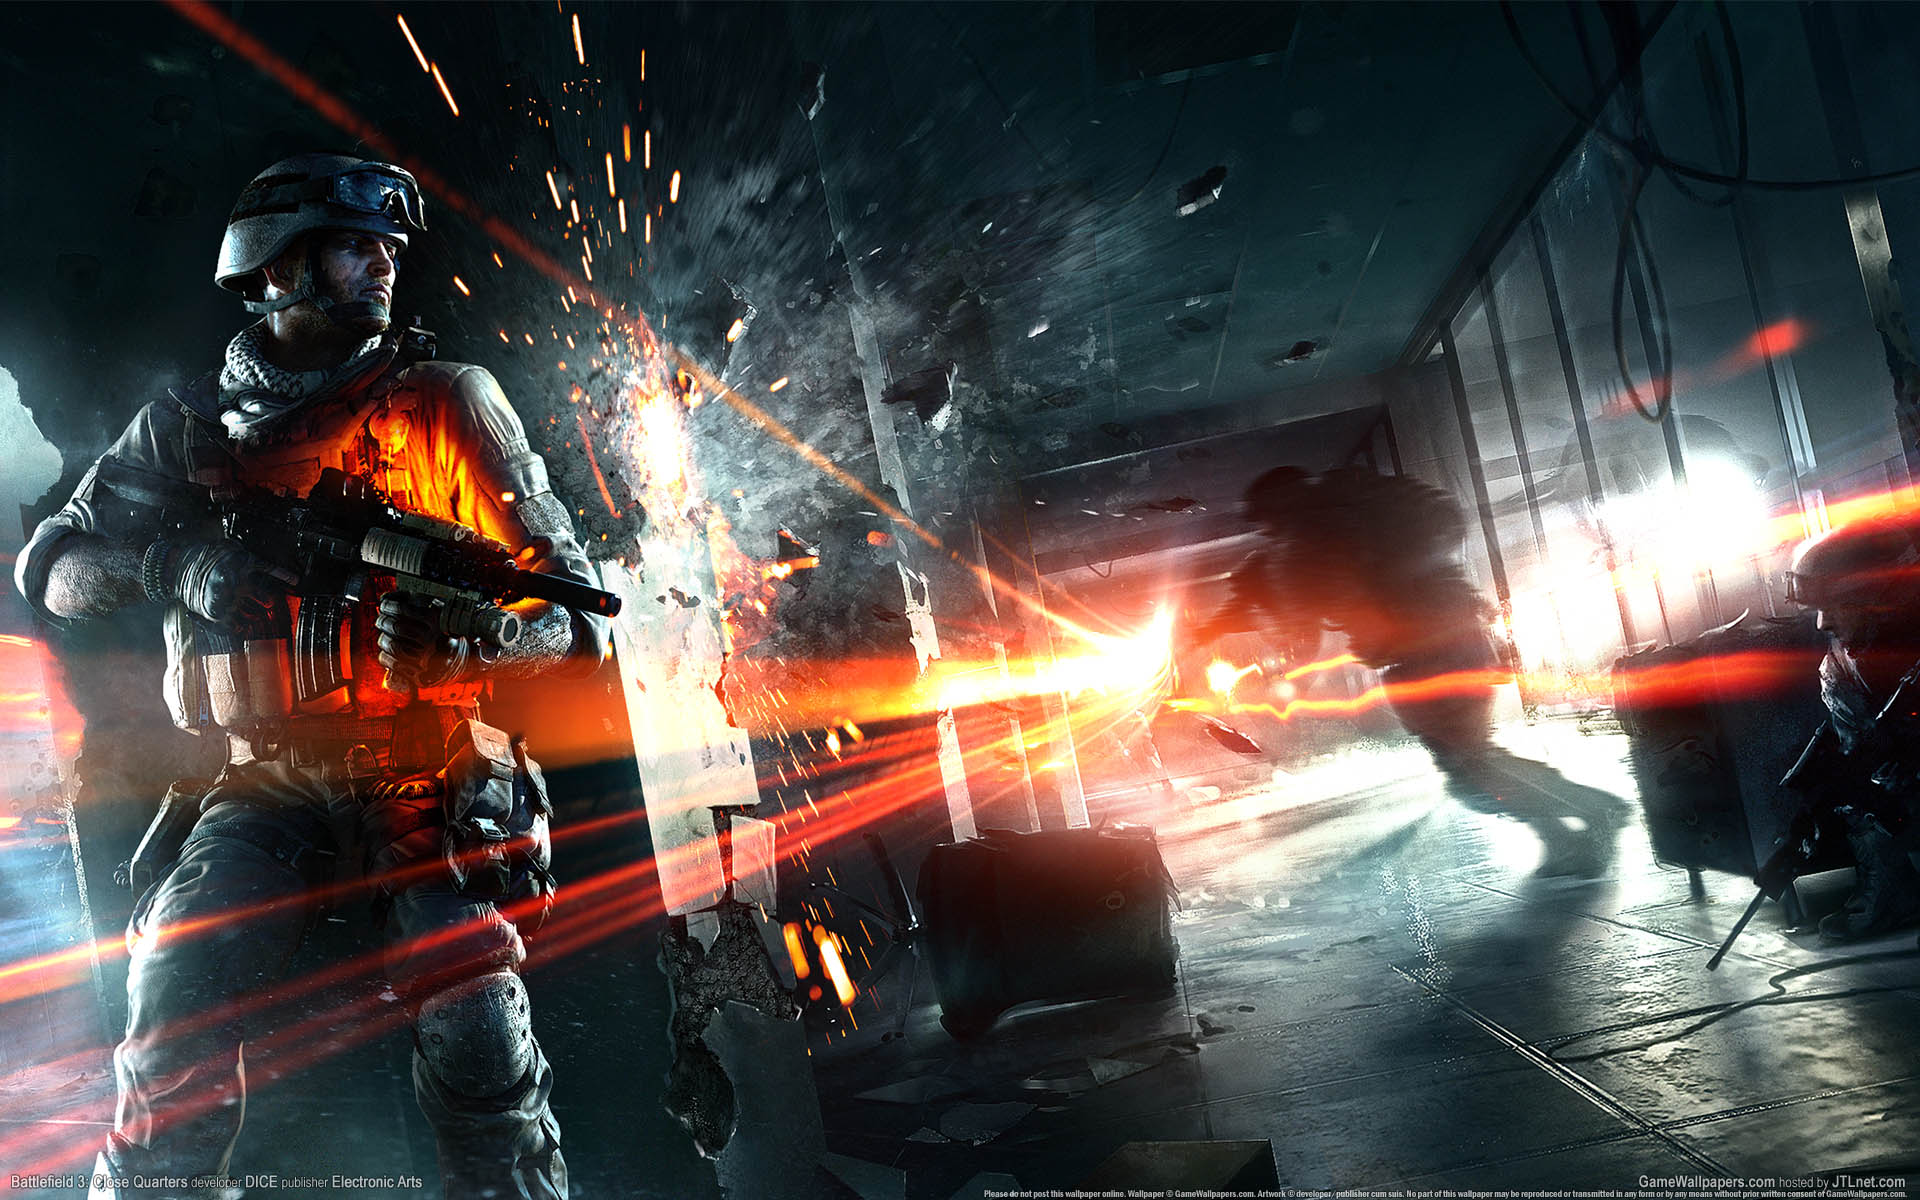 10 Best 4k Hd Gaming Wallpapers Full Hd 1920 1080 For Pc: Battlefield 3 Wallpapers, Pictures, Images